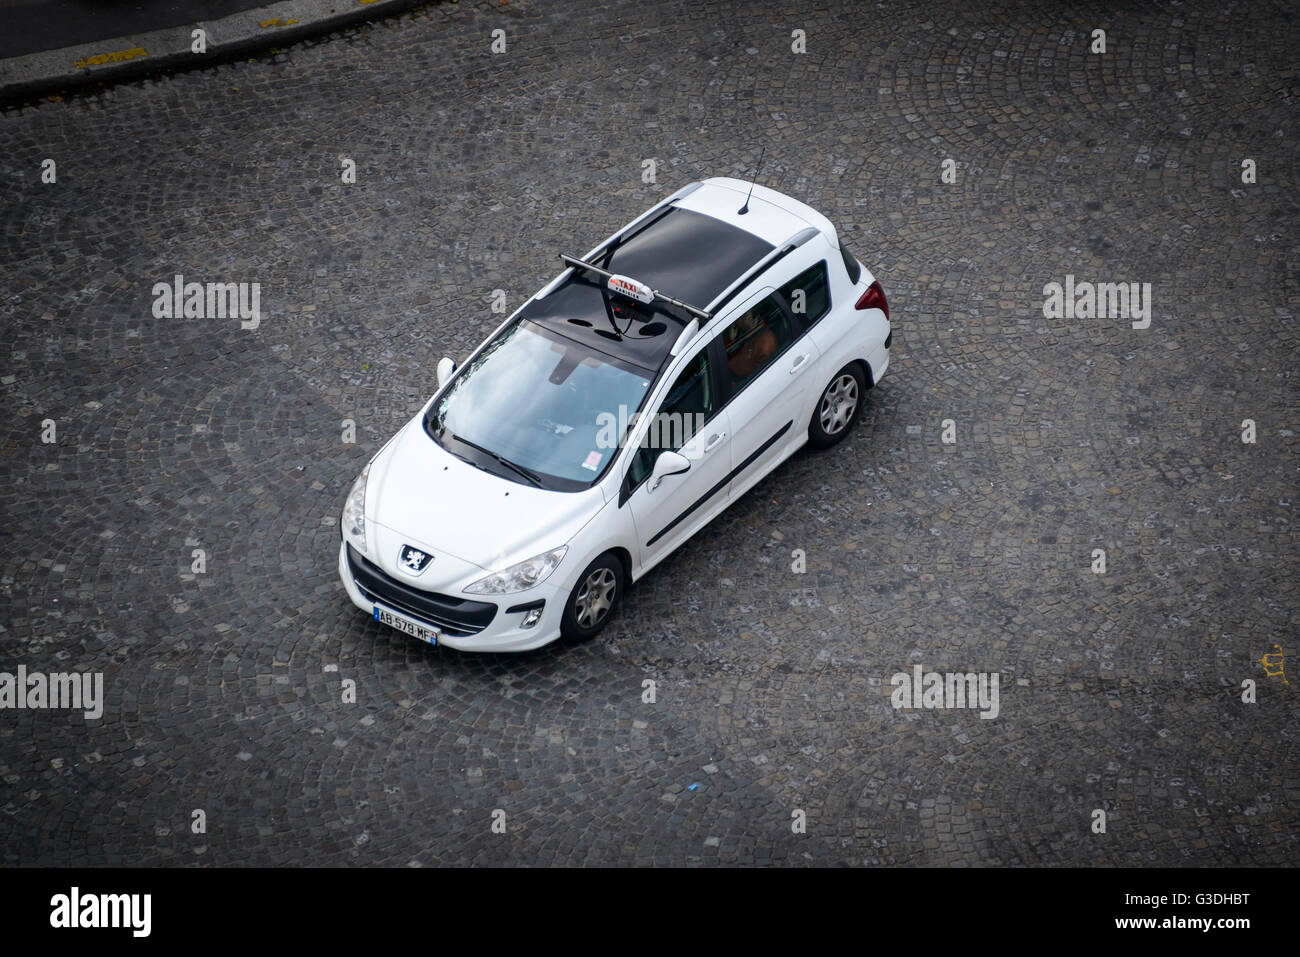 Bird's eye view of a Peugeot 308 SW Parisian taxi - Stock Image